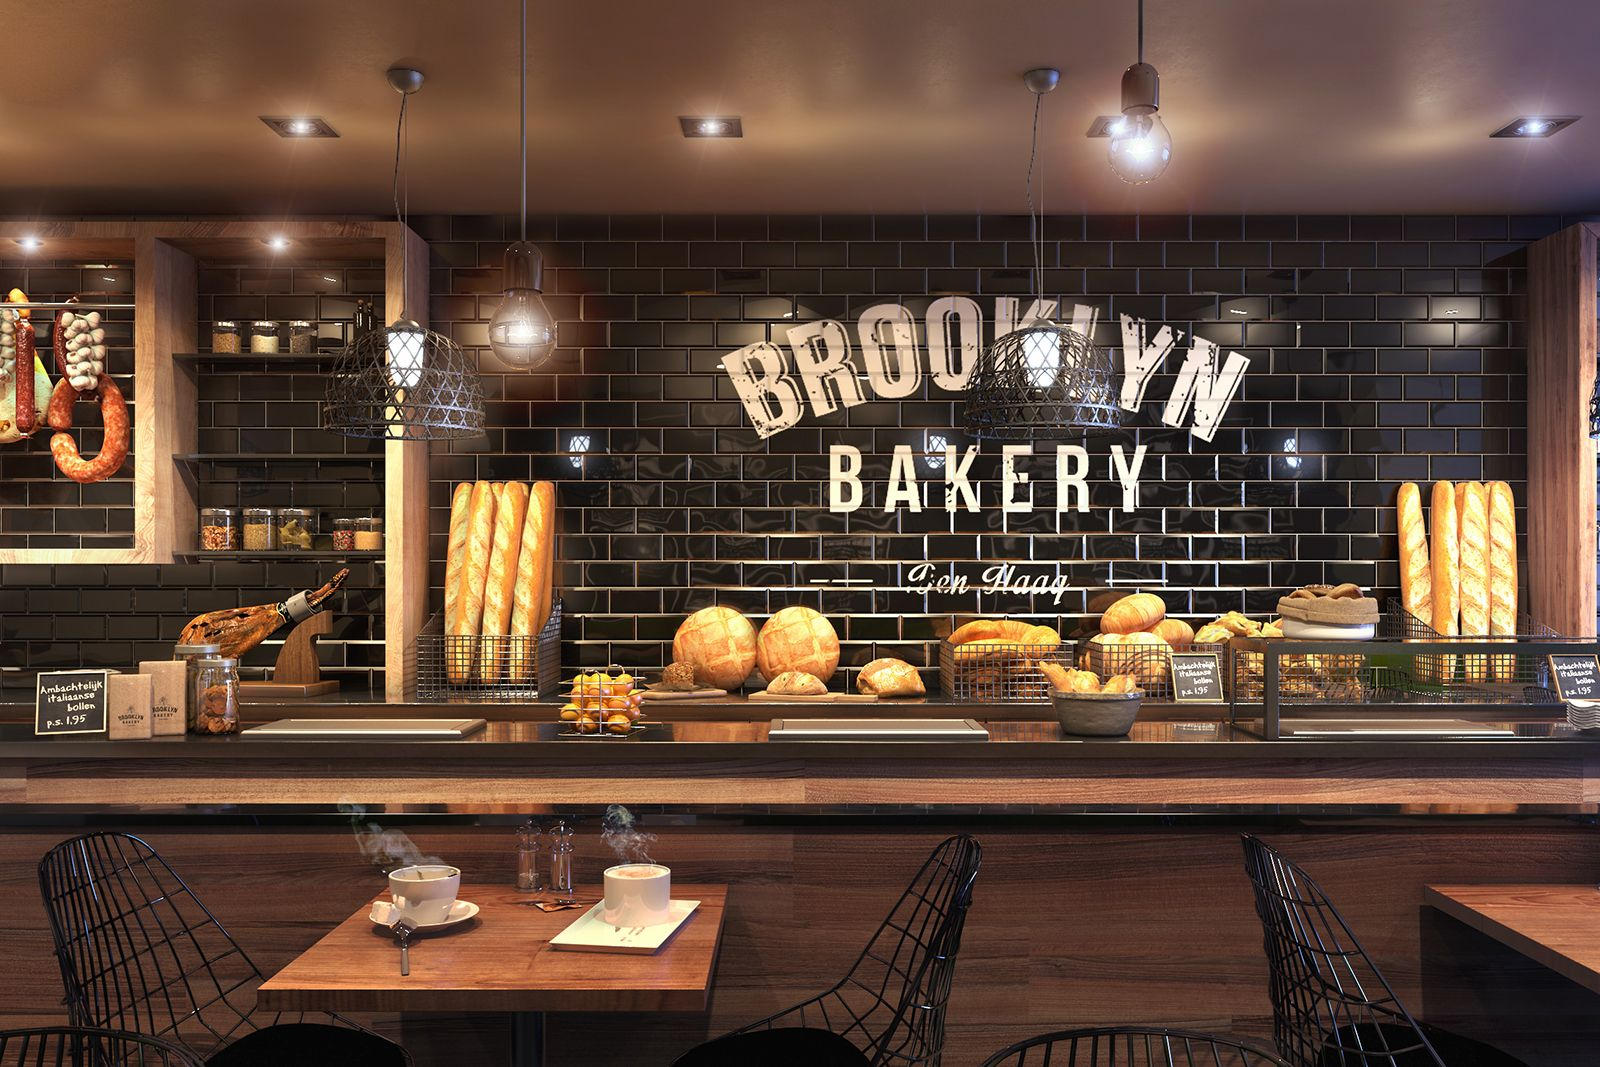 Design Interieur Concept Optic Media – 3d Visualisatie En Webdesign – Bakery